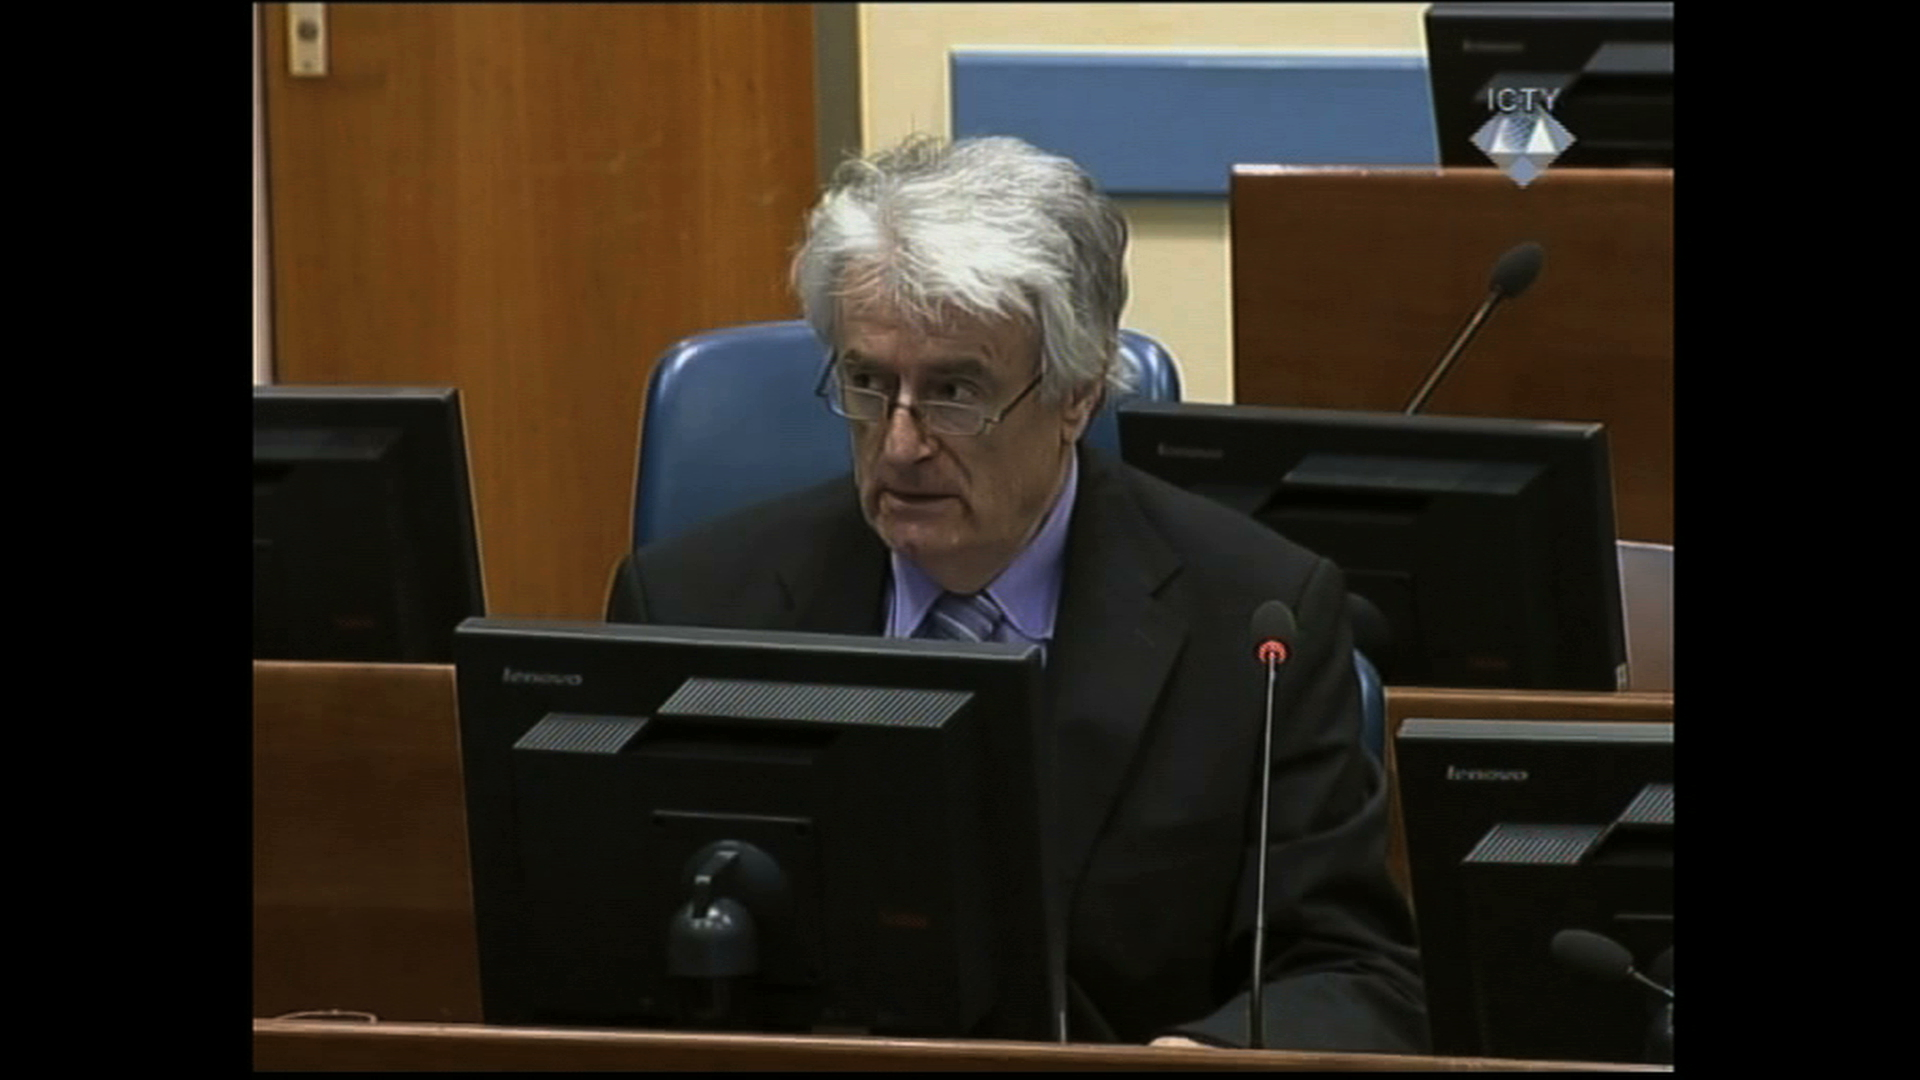 Selected frame from video story ICTY / KARADZIC